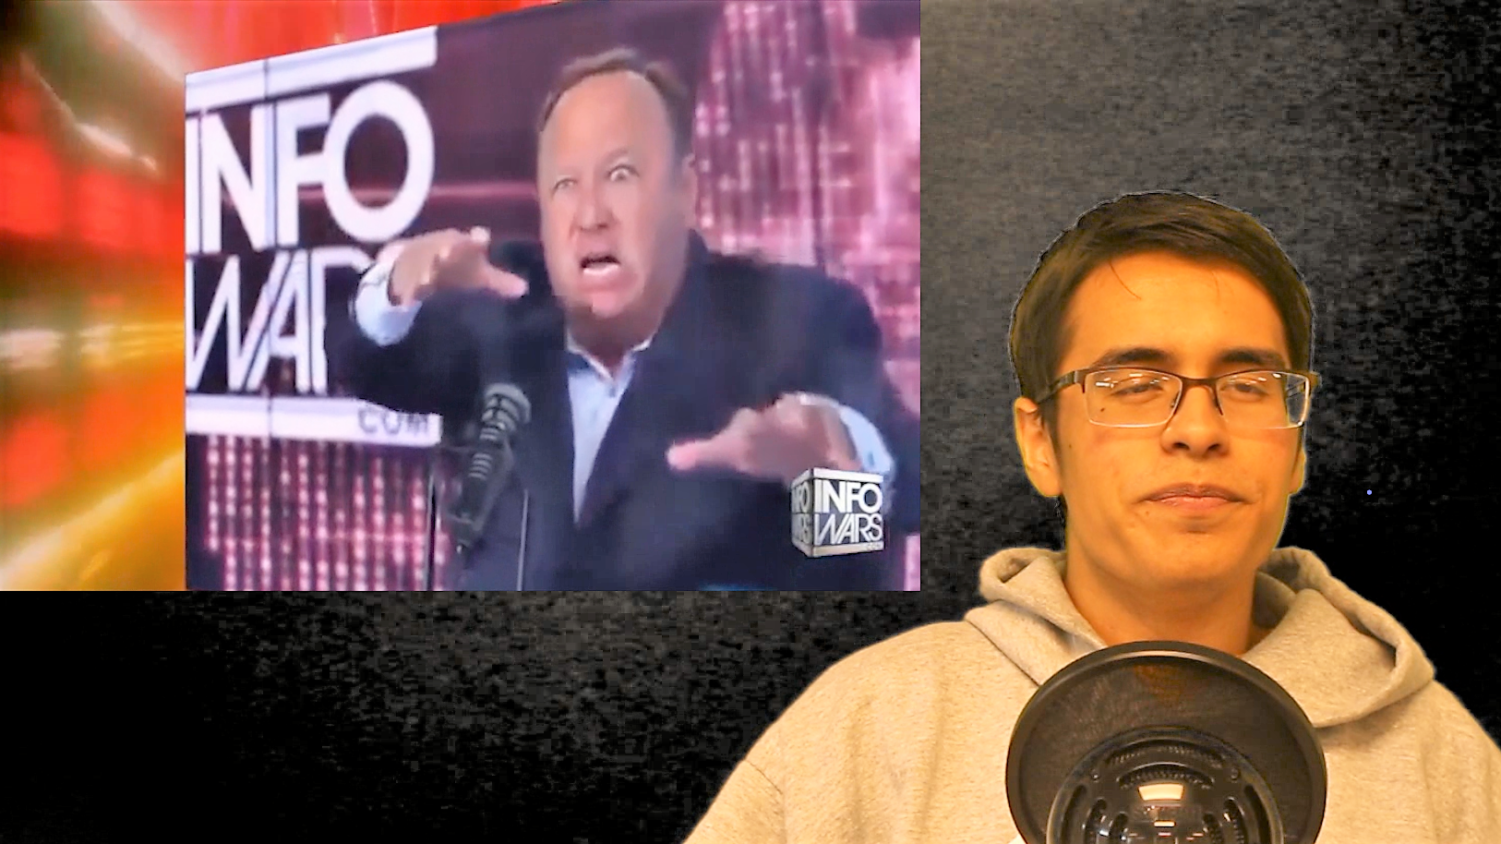 Opinion: Why banning Alex Jones could be a mistake